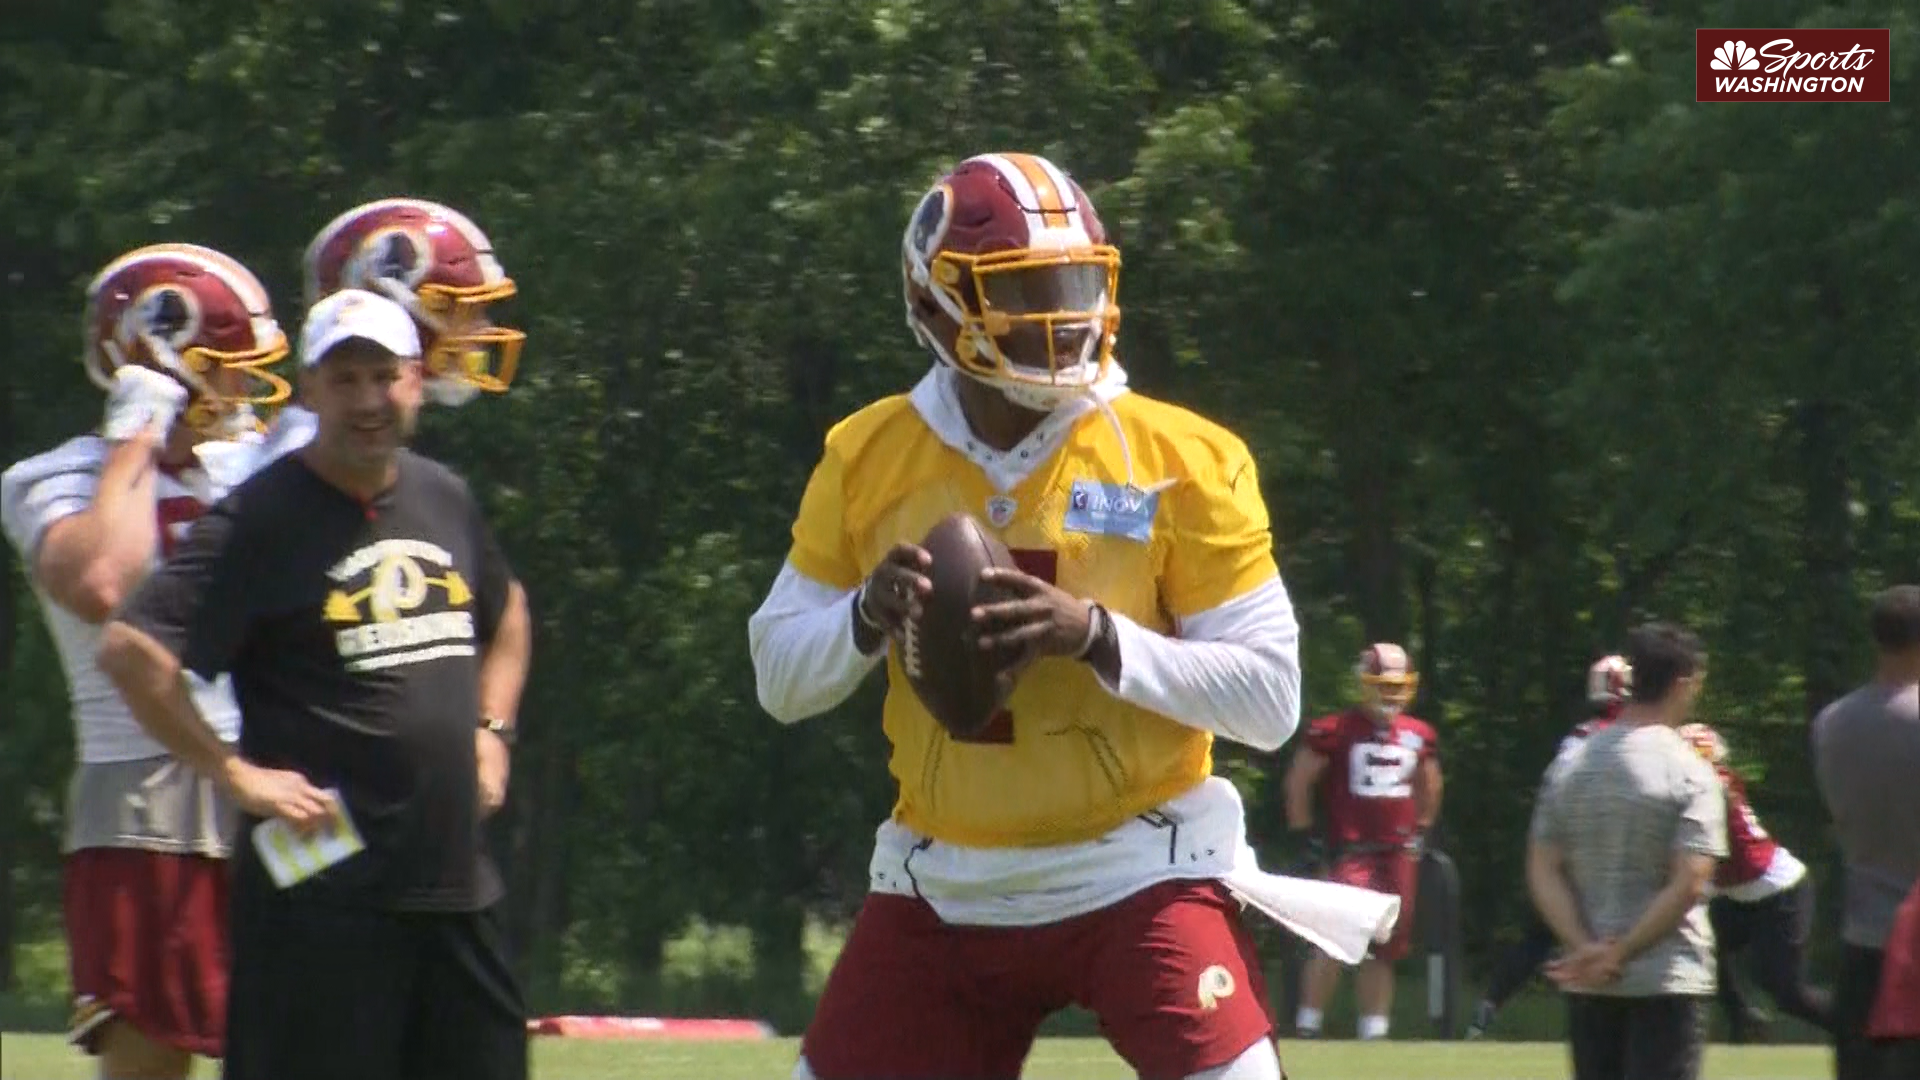 See Dwayne Haskins' first-day highlights from Redskins OTAs